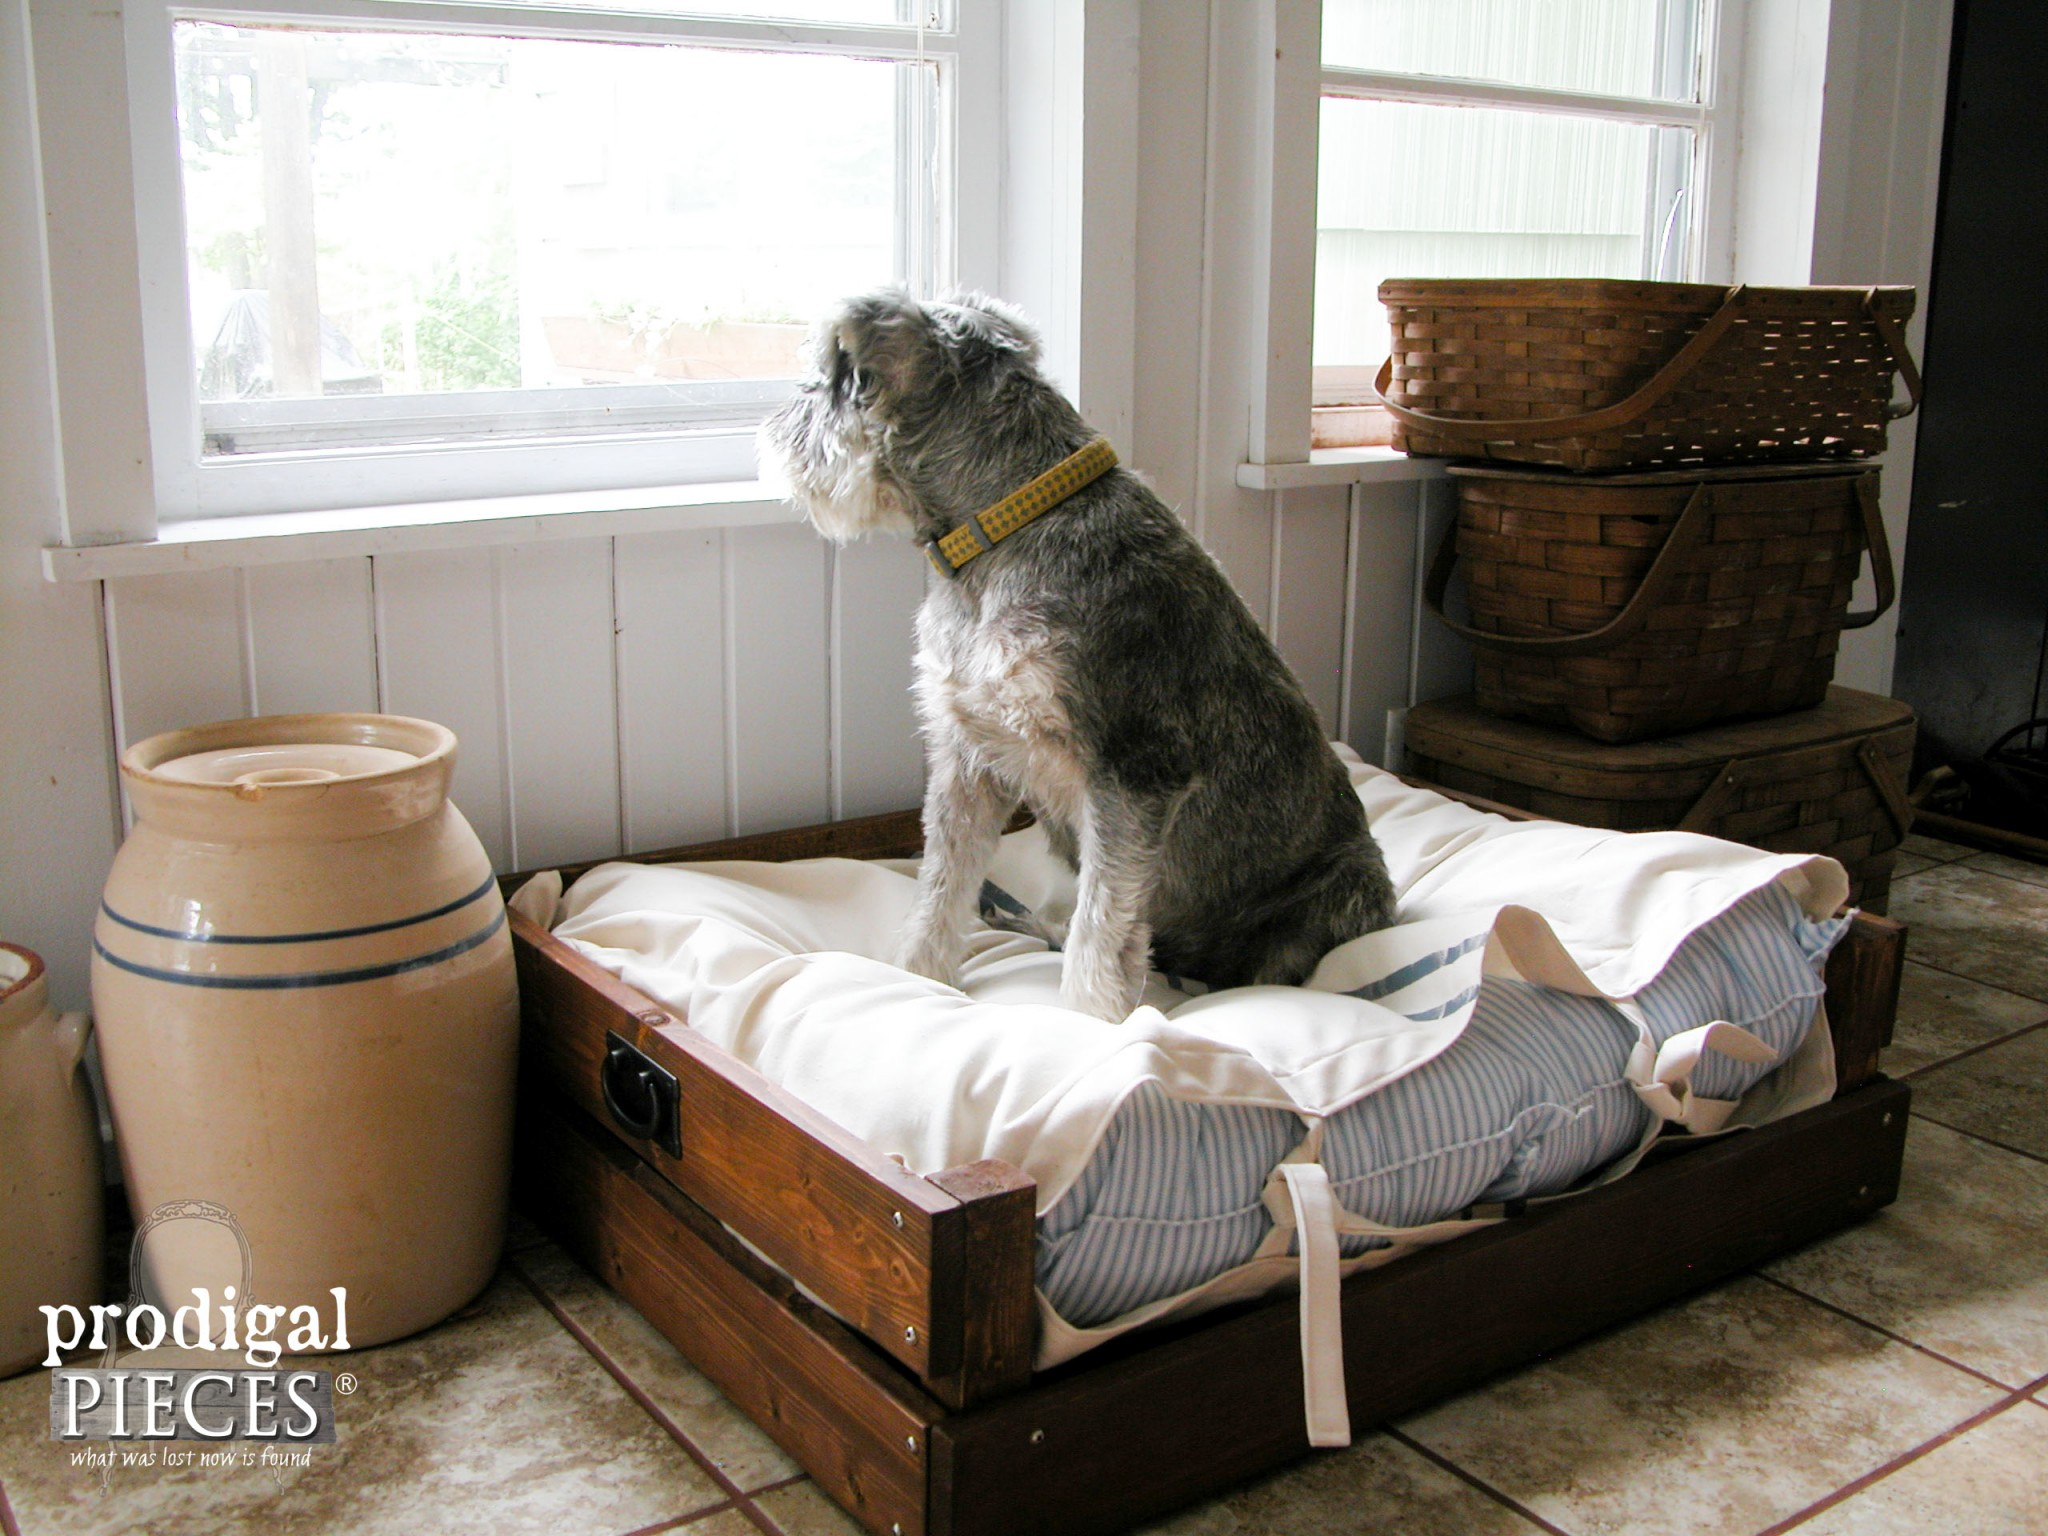 Miniature Schnauzer Sitting on DIY Pet Bed. Plans & Tutorial included by Prodigal Pieces | www.prodigalpieces.com